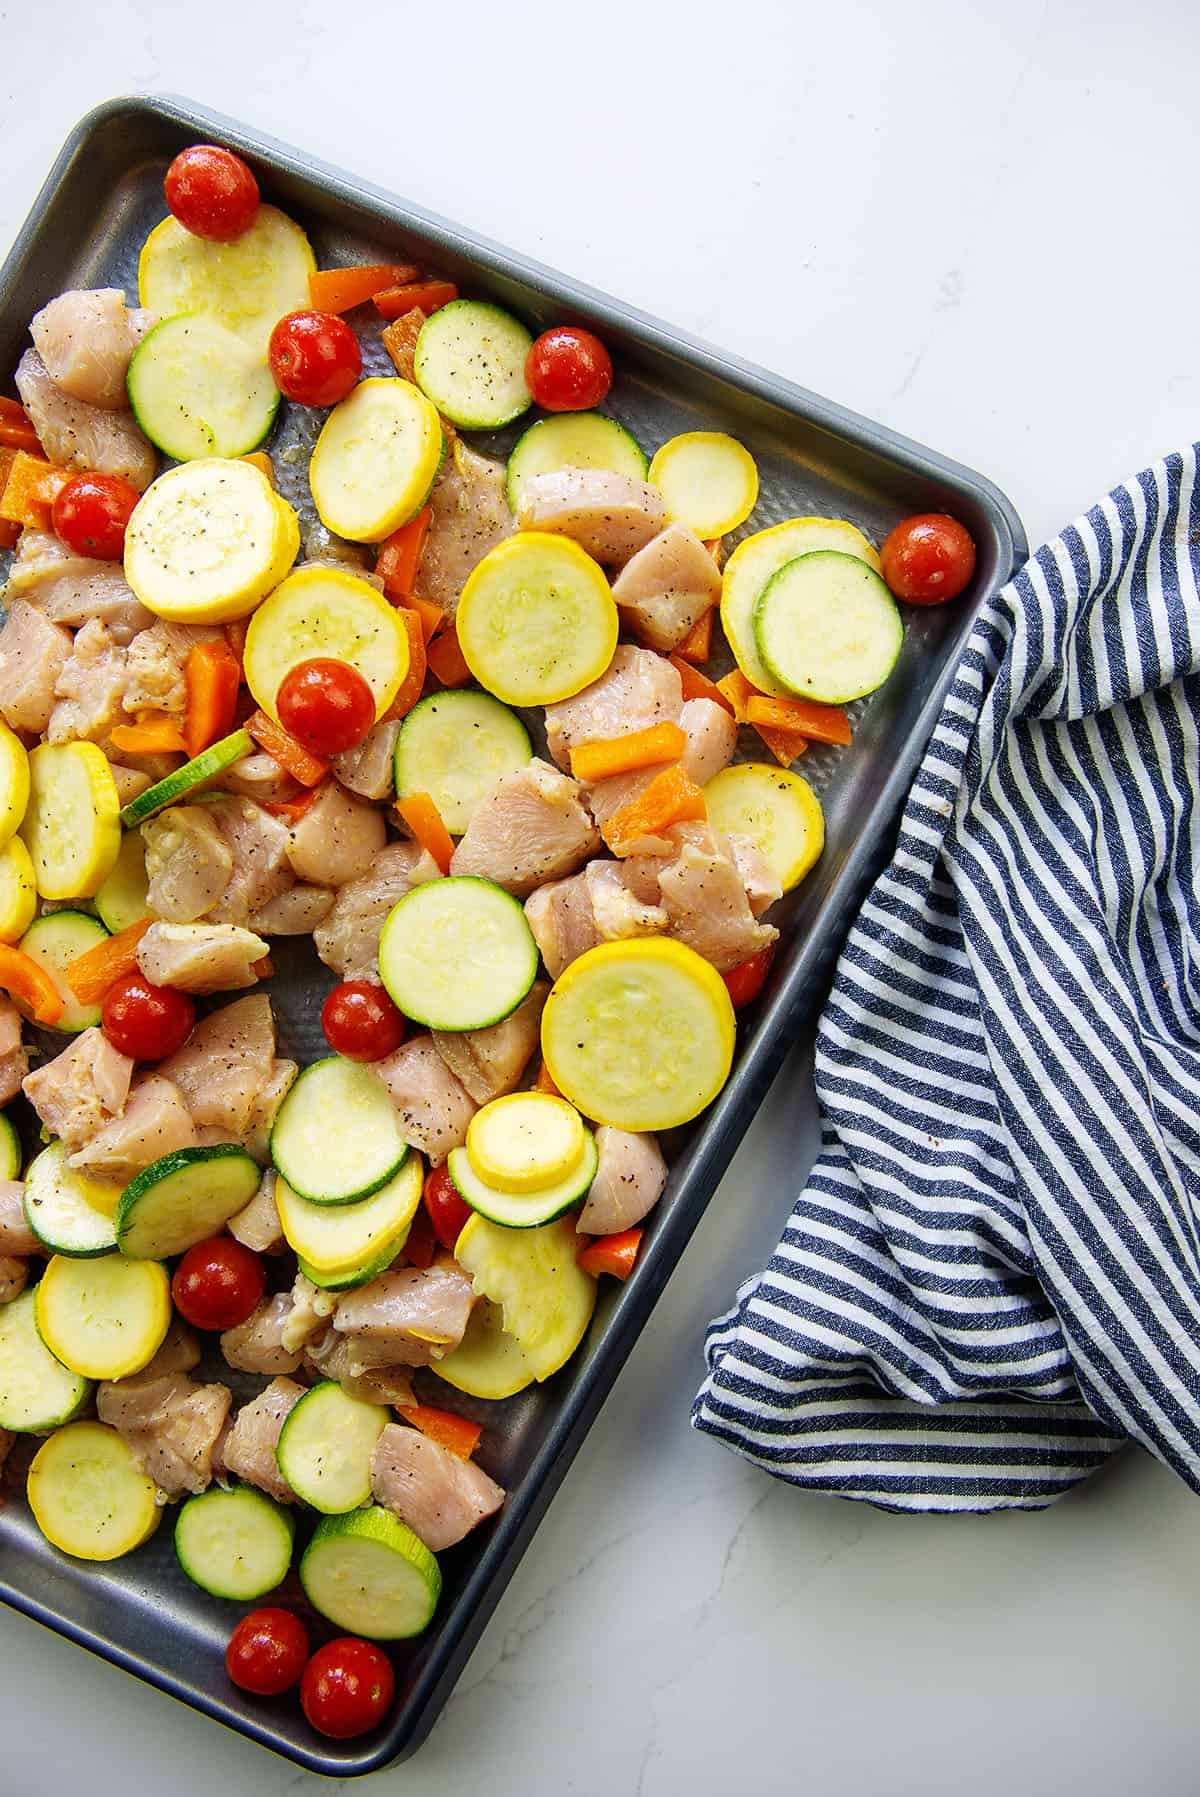 chicken and vegetables on sheet pan.